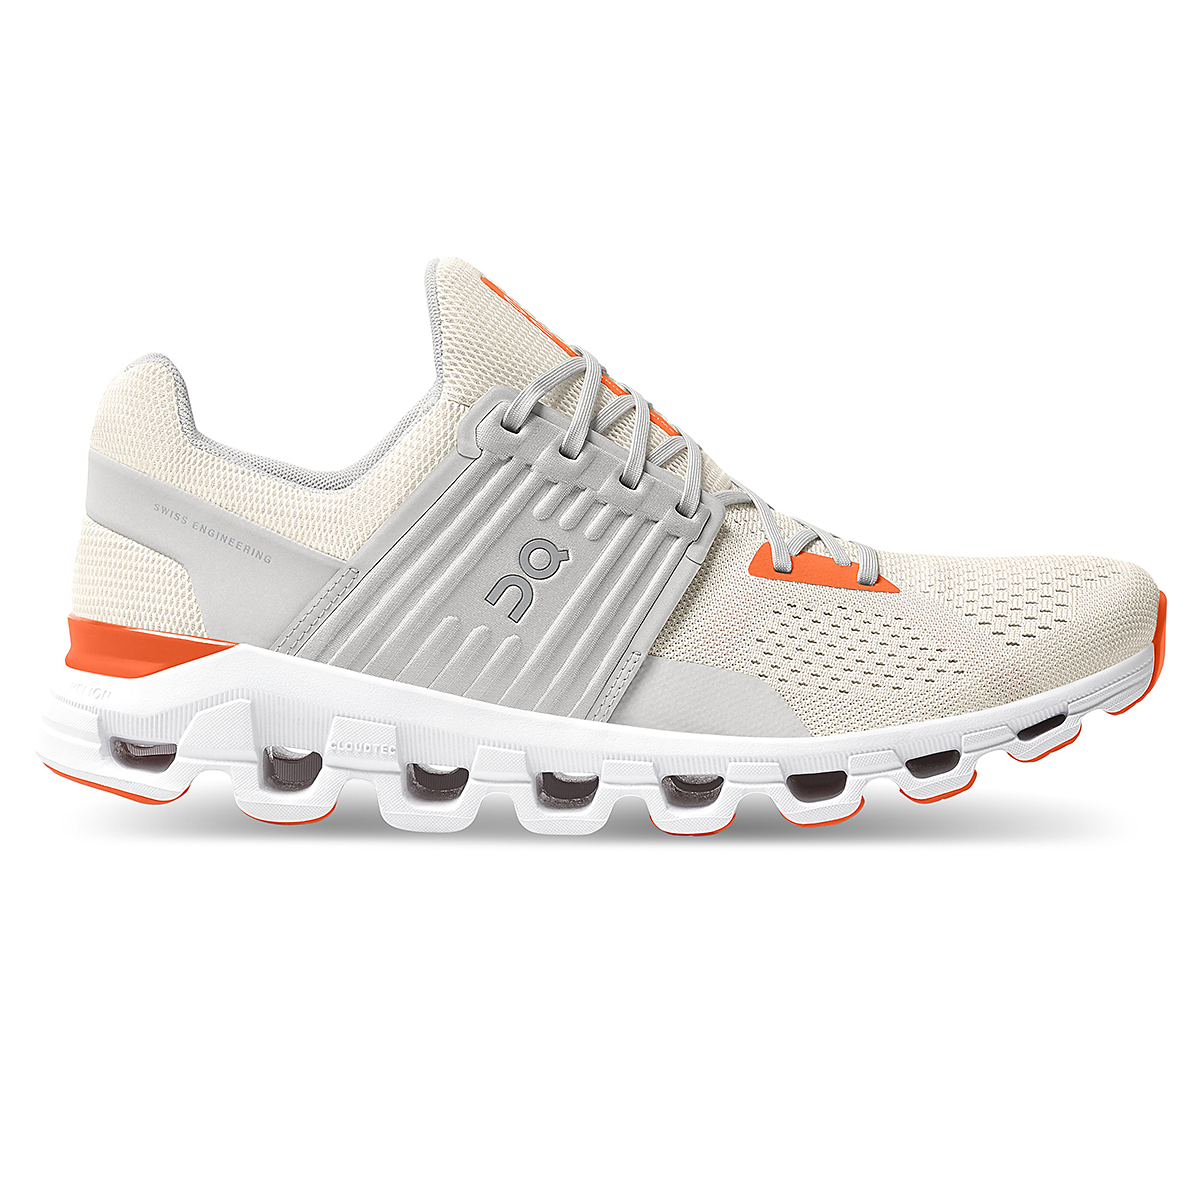 Men's On Cloudswift 2.0 Running Shoe - Color: White | Flame - Size: 7 - Width: Regular, White | Flame, large, image 1